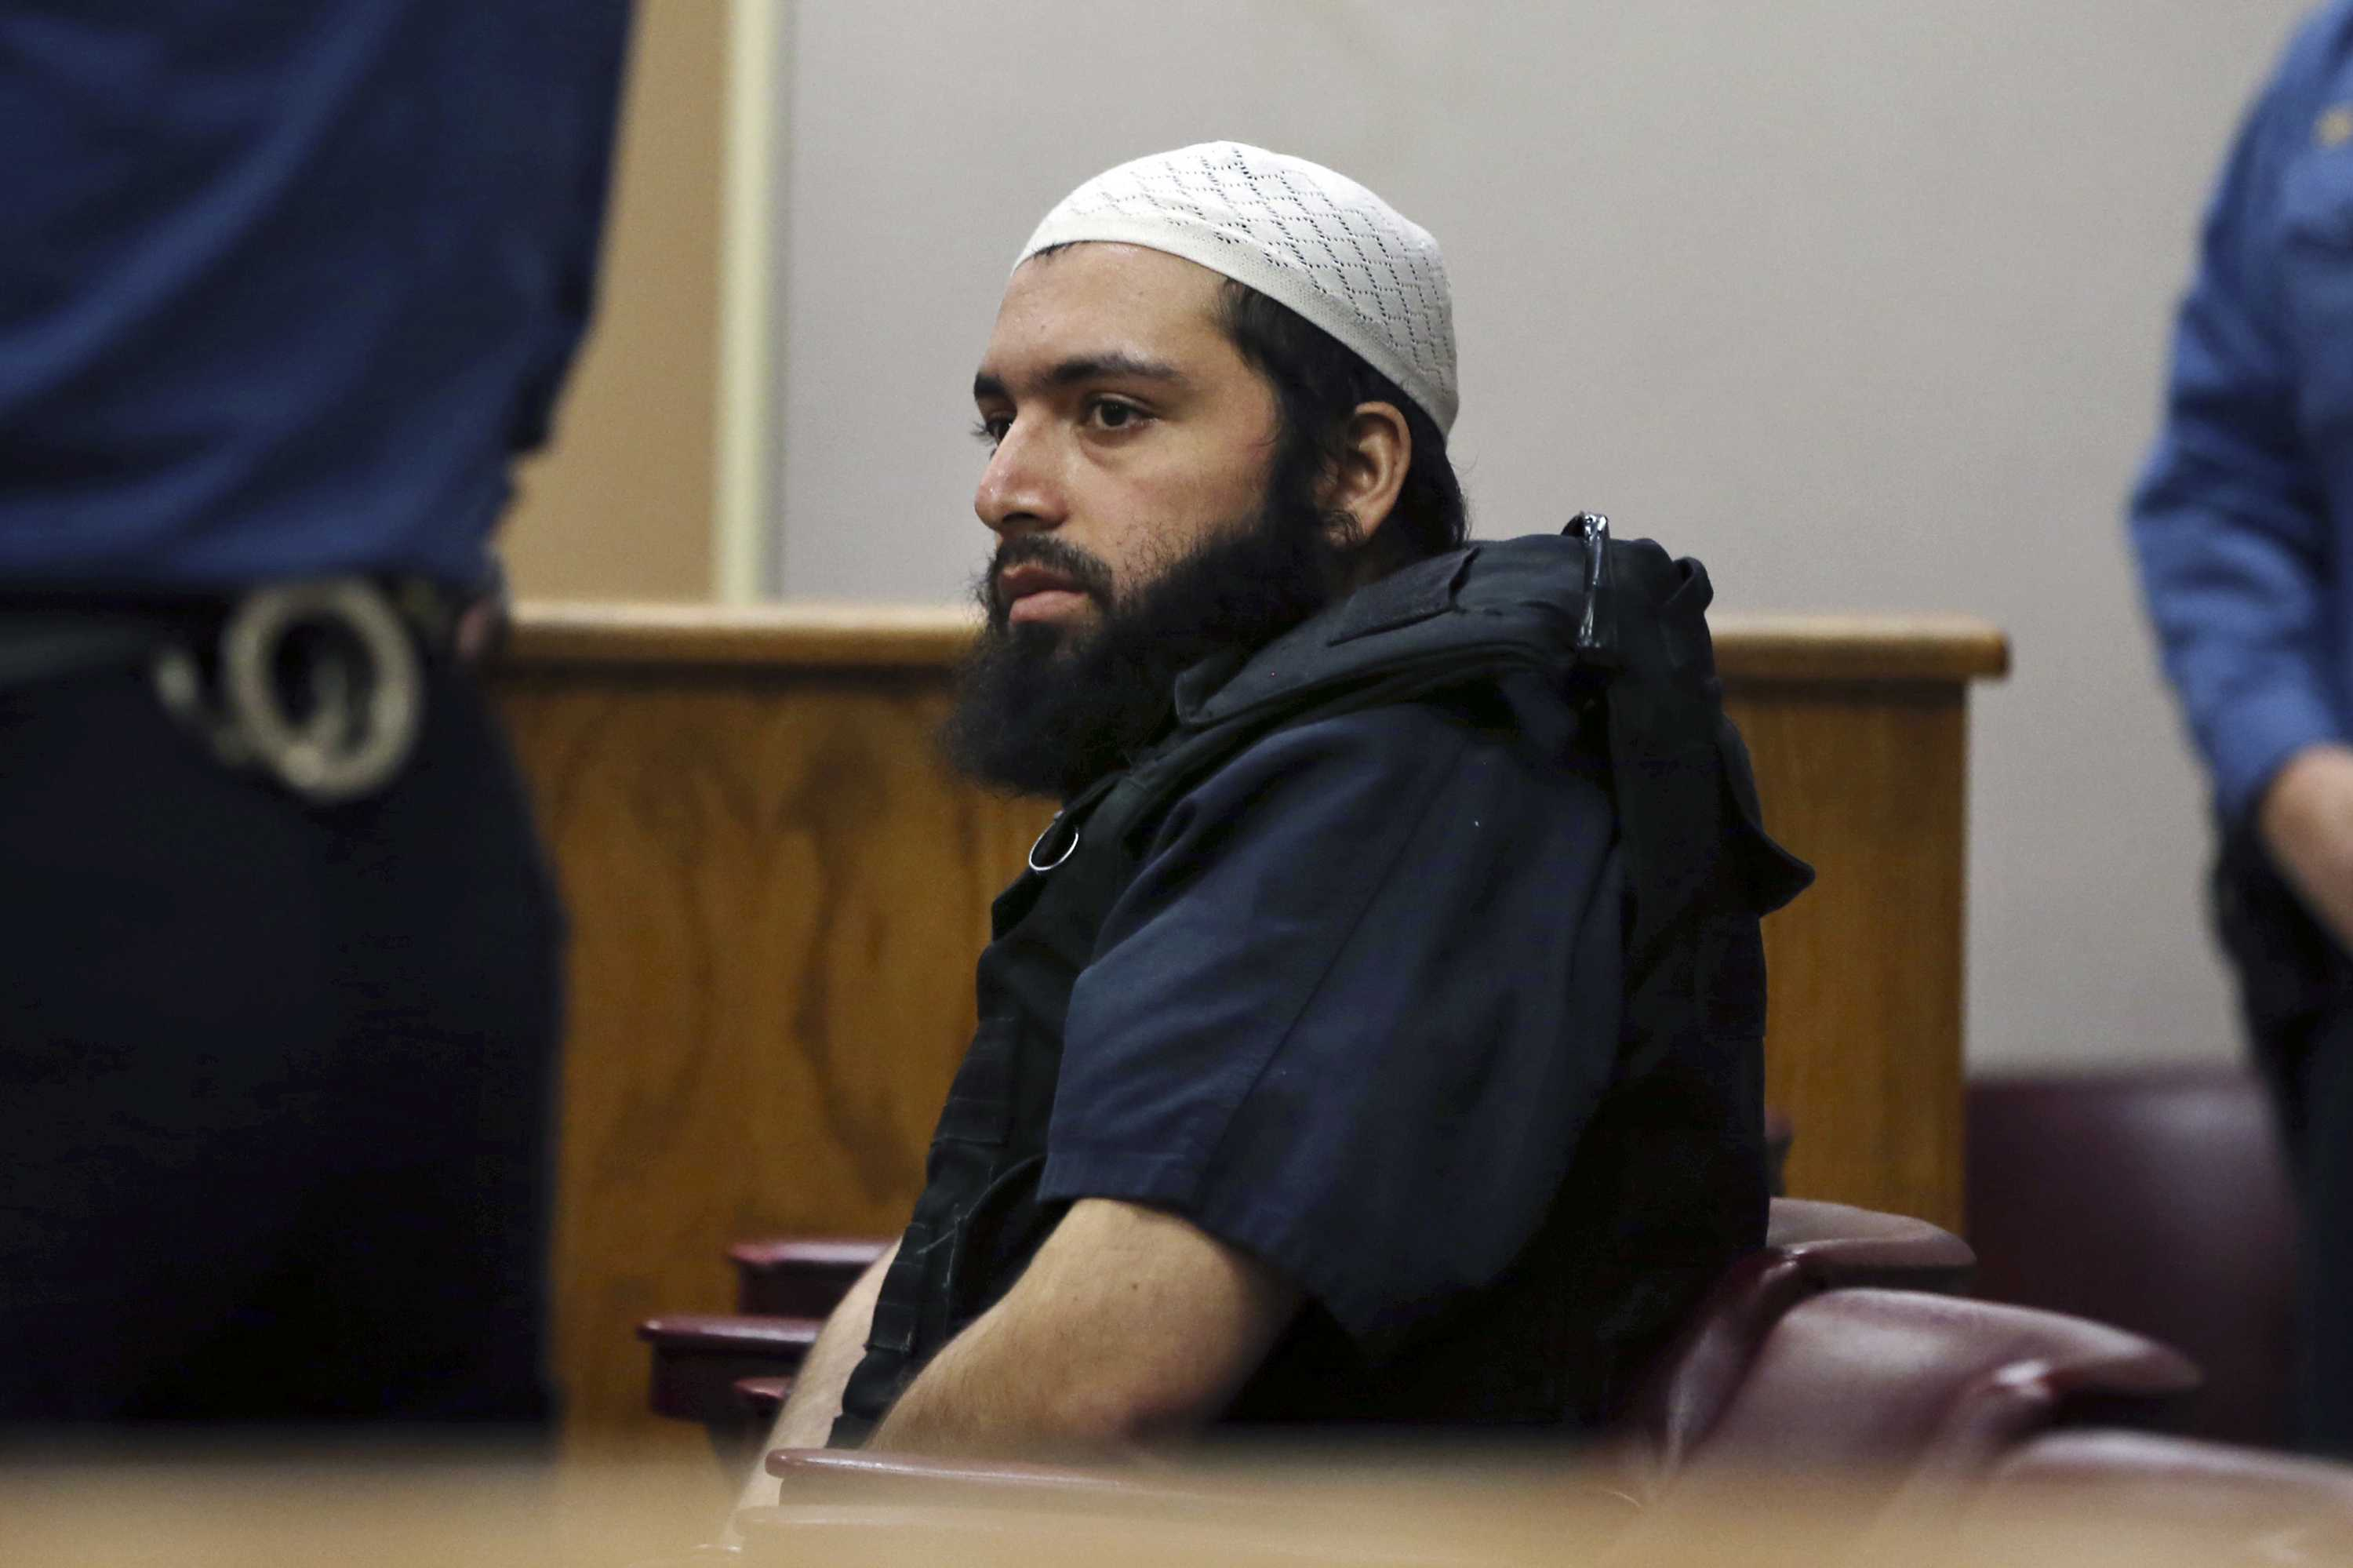 NYC bomber Ahmed Rahimi sentenced to life in prison